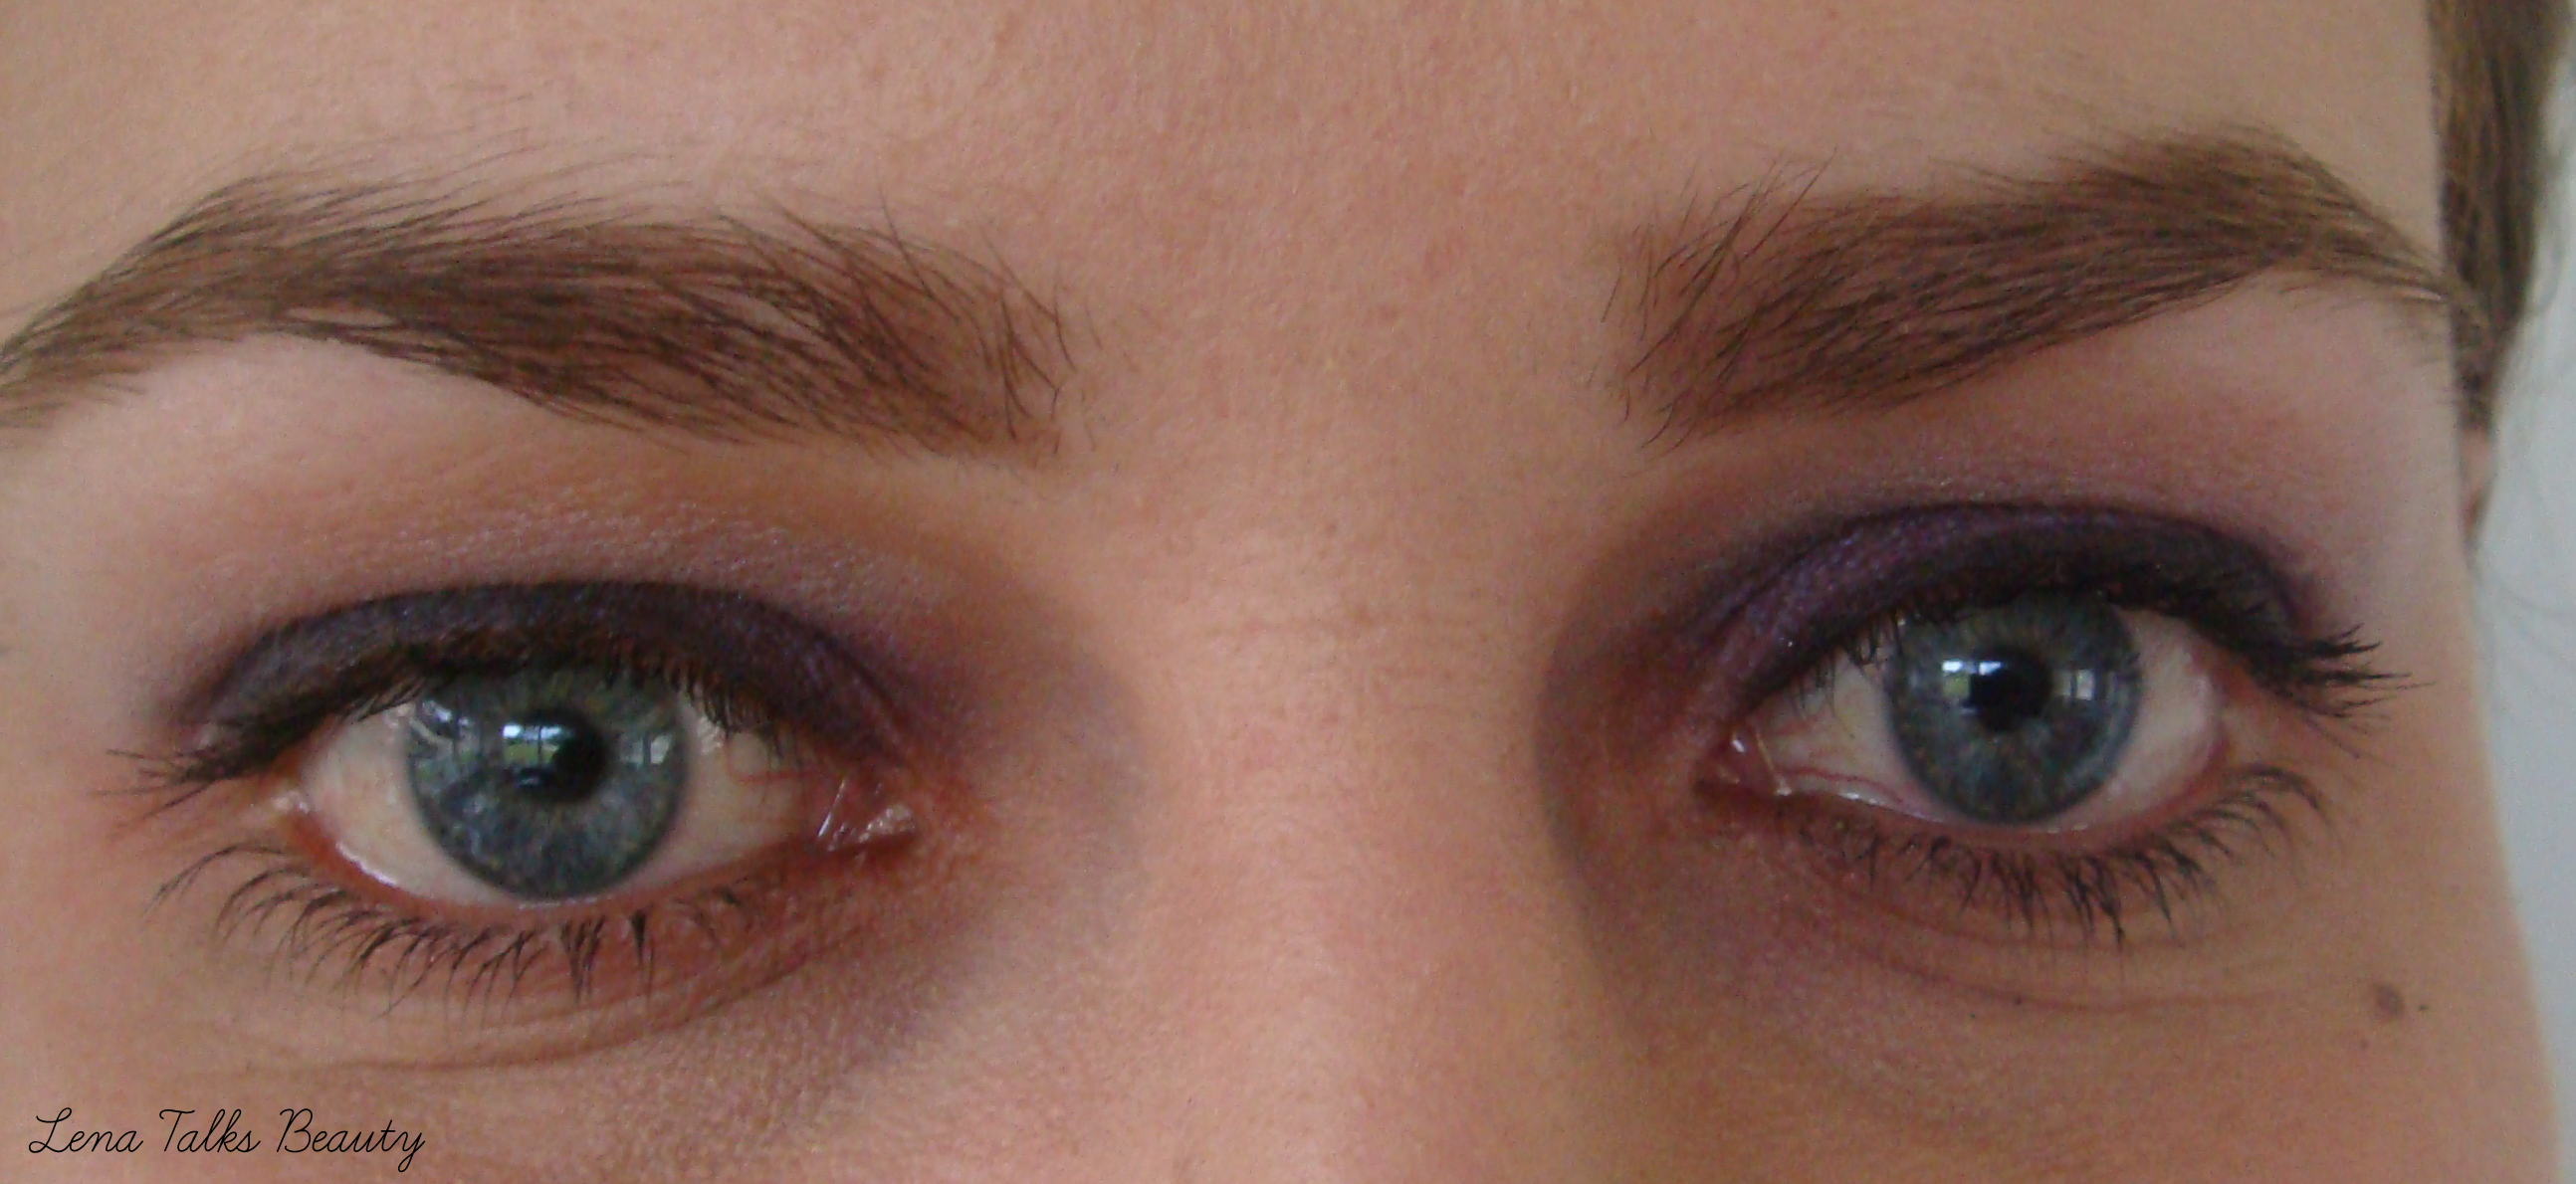 Purple Eye Makeup Pictures to Pin on Pinterest - TattoosKid